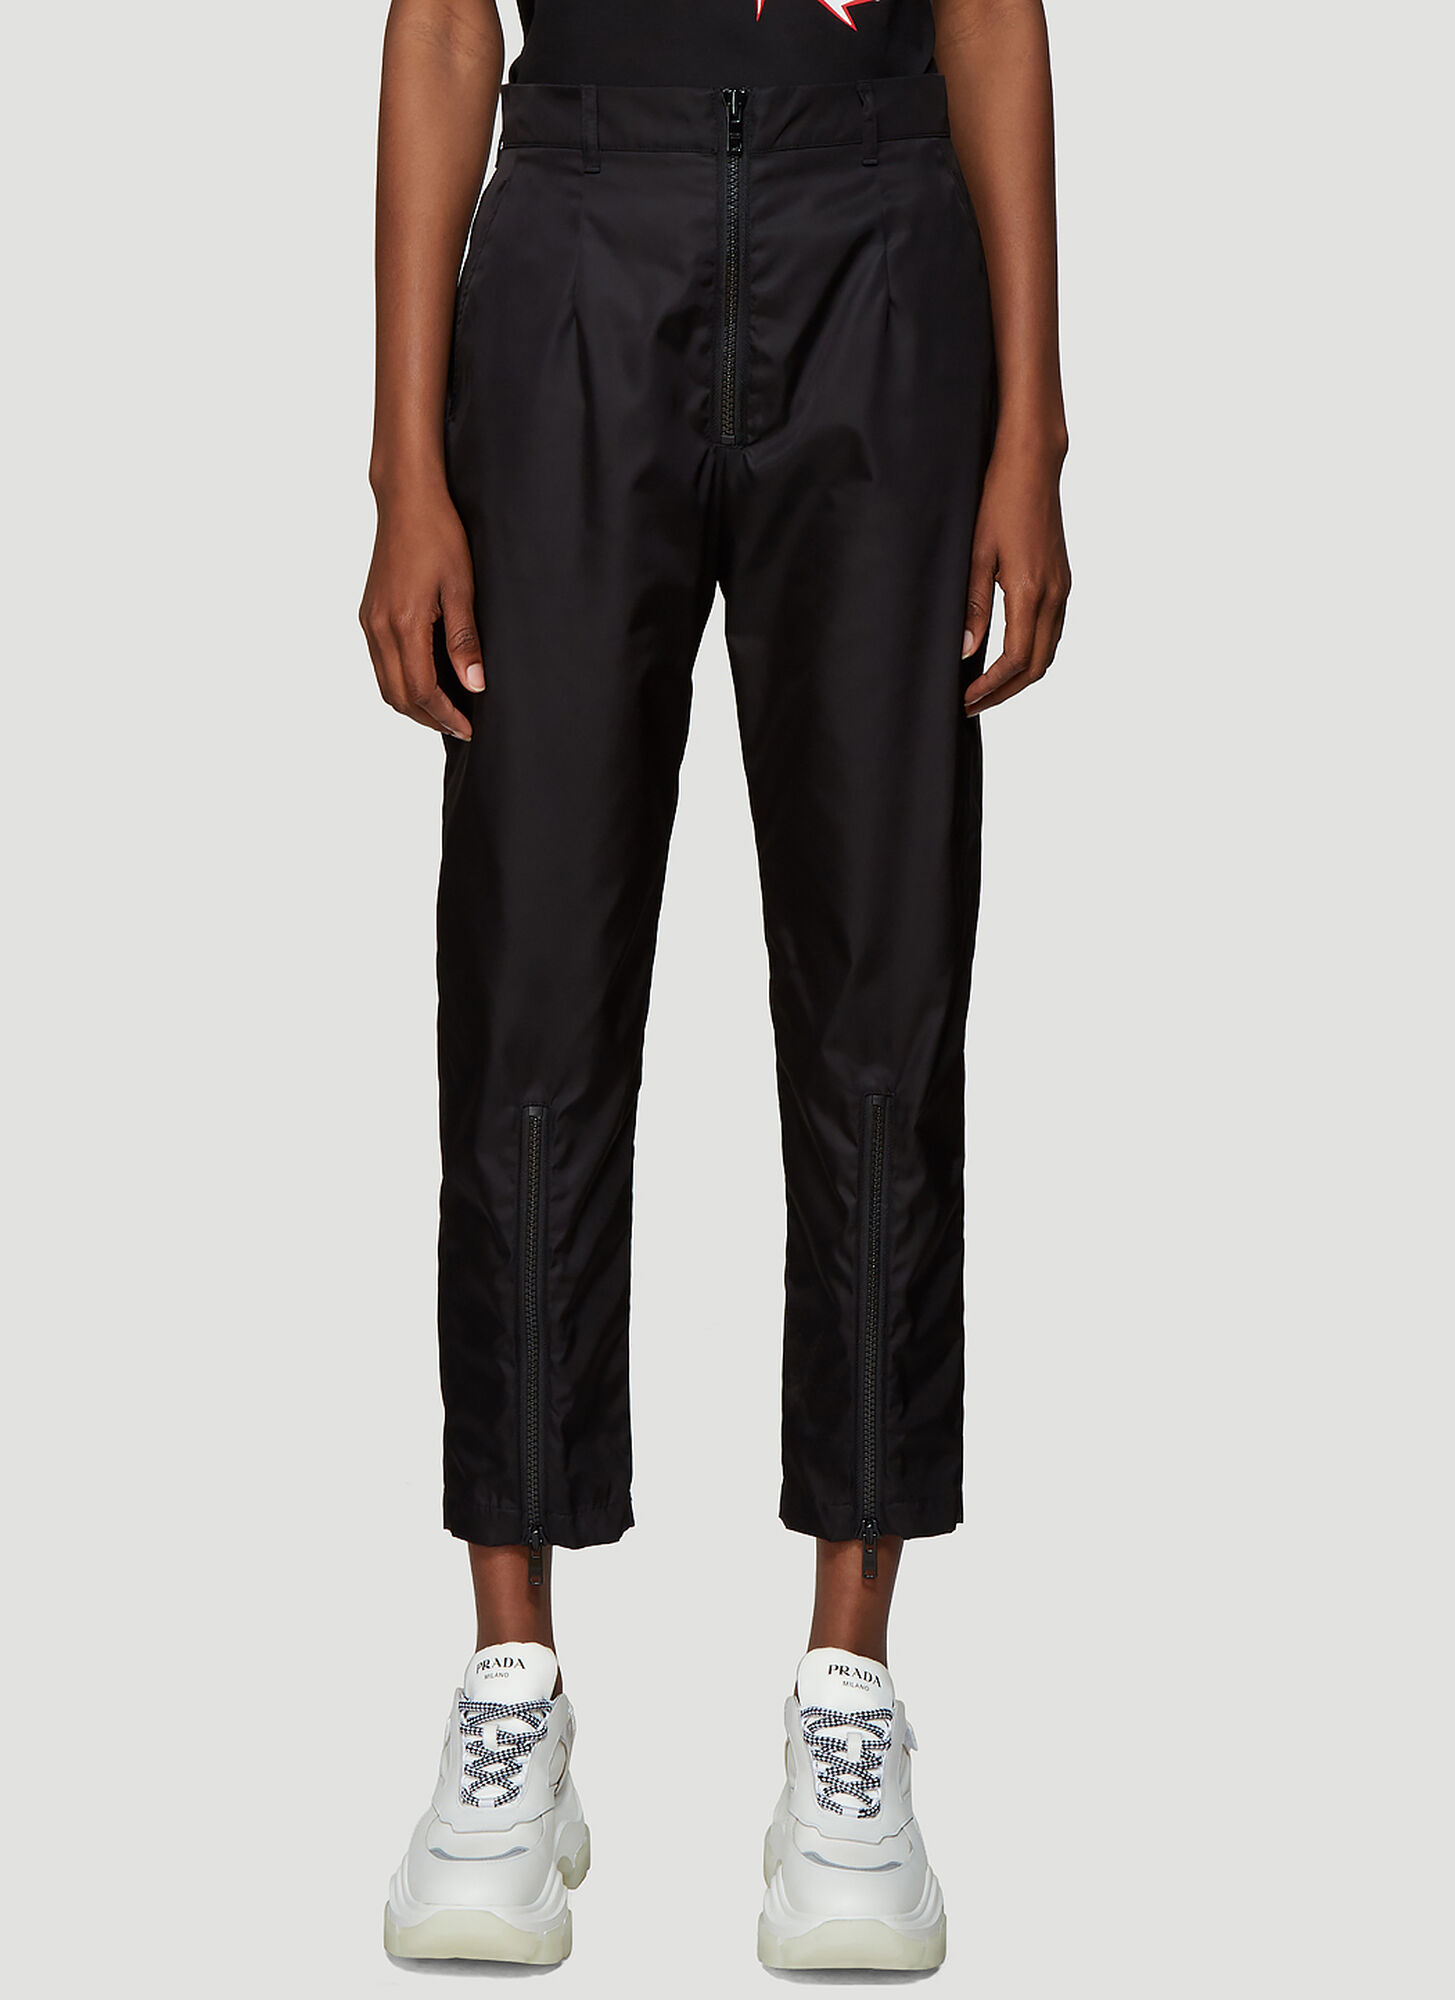 Prada Nylon Gabardine Pants in Black